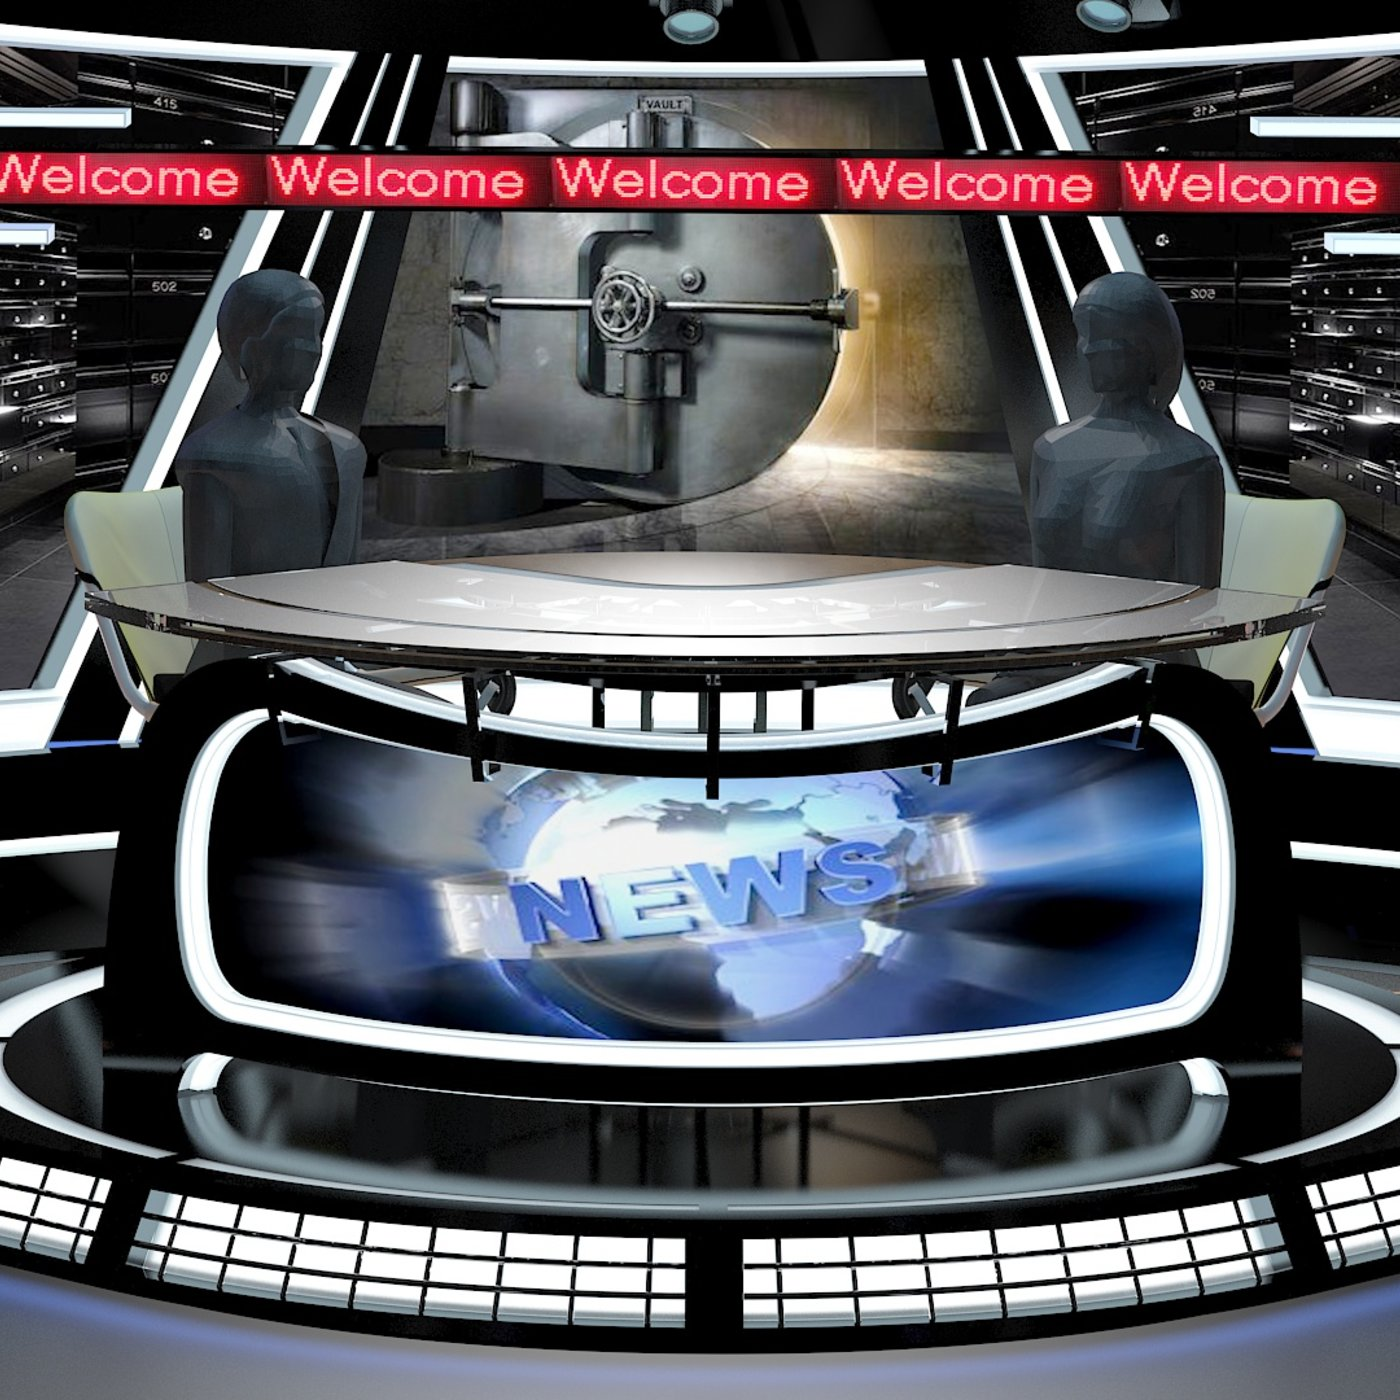 Virtual TV Studio News Set 34